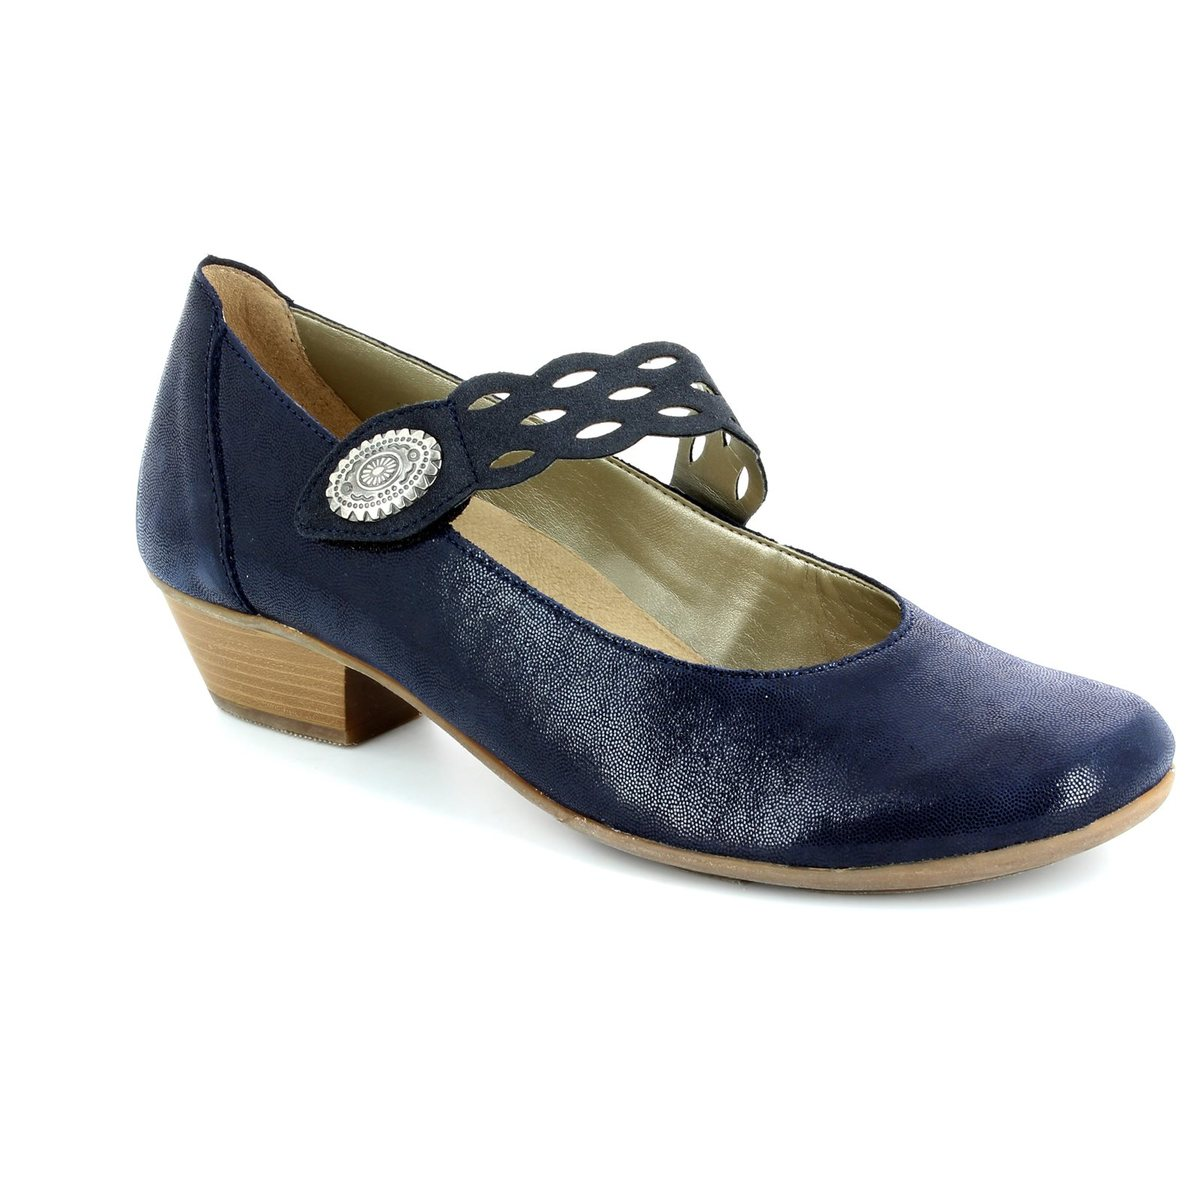 Van Dal Womens Suede Navy Shoes